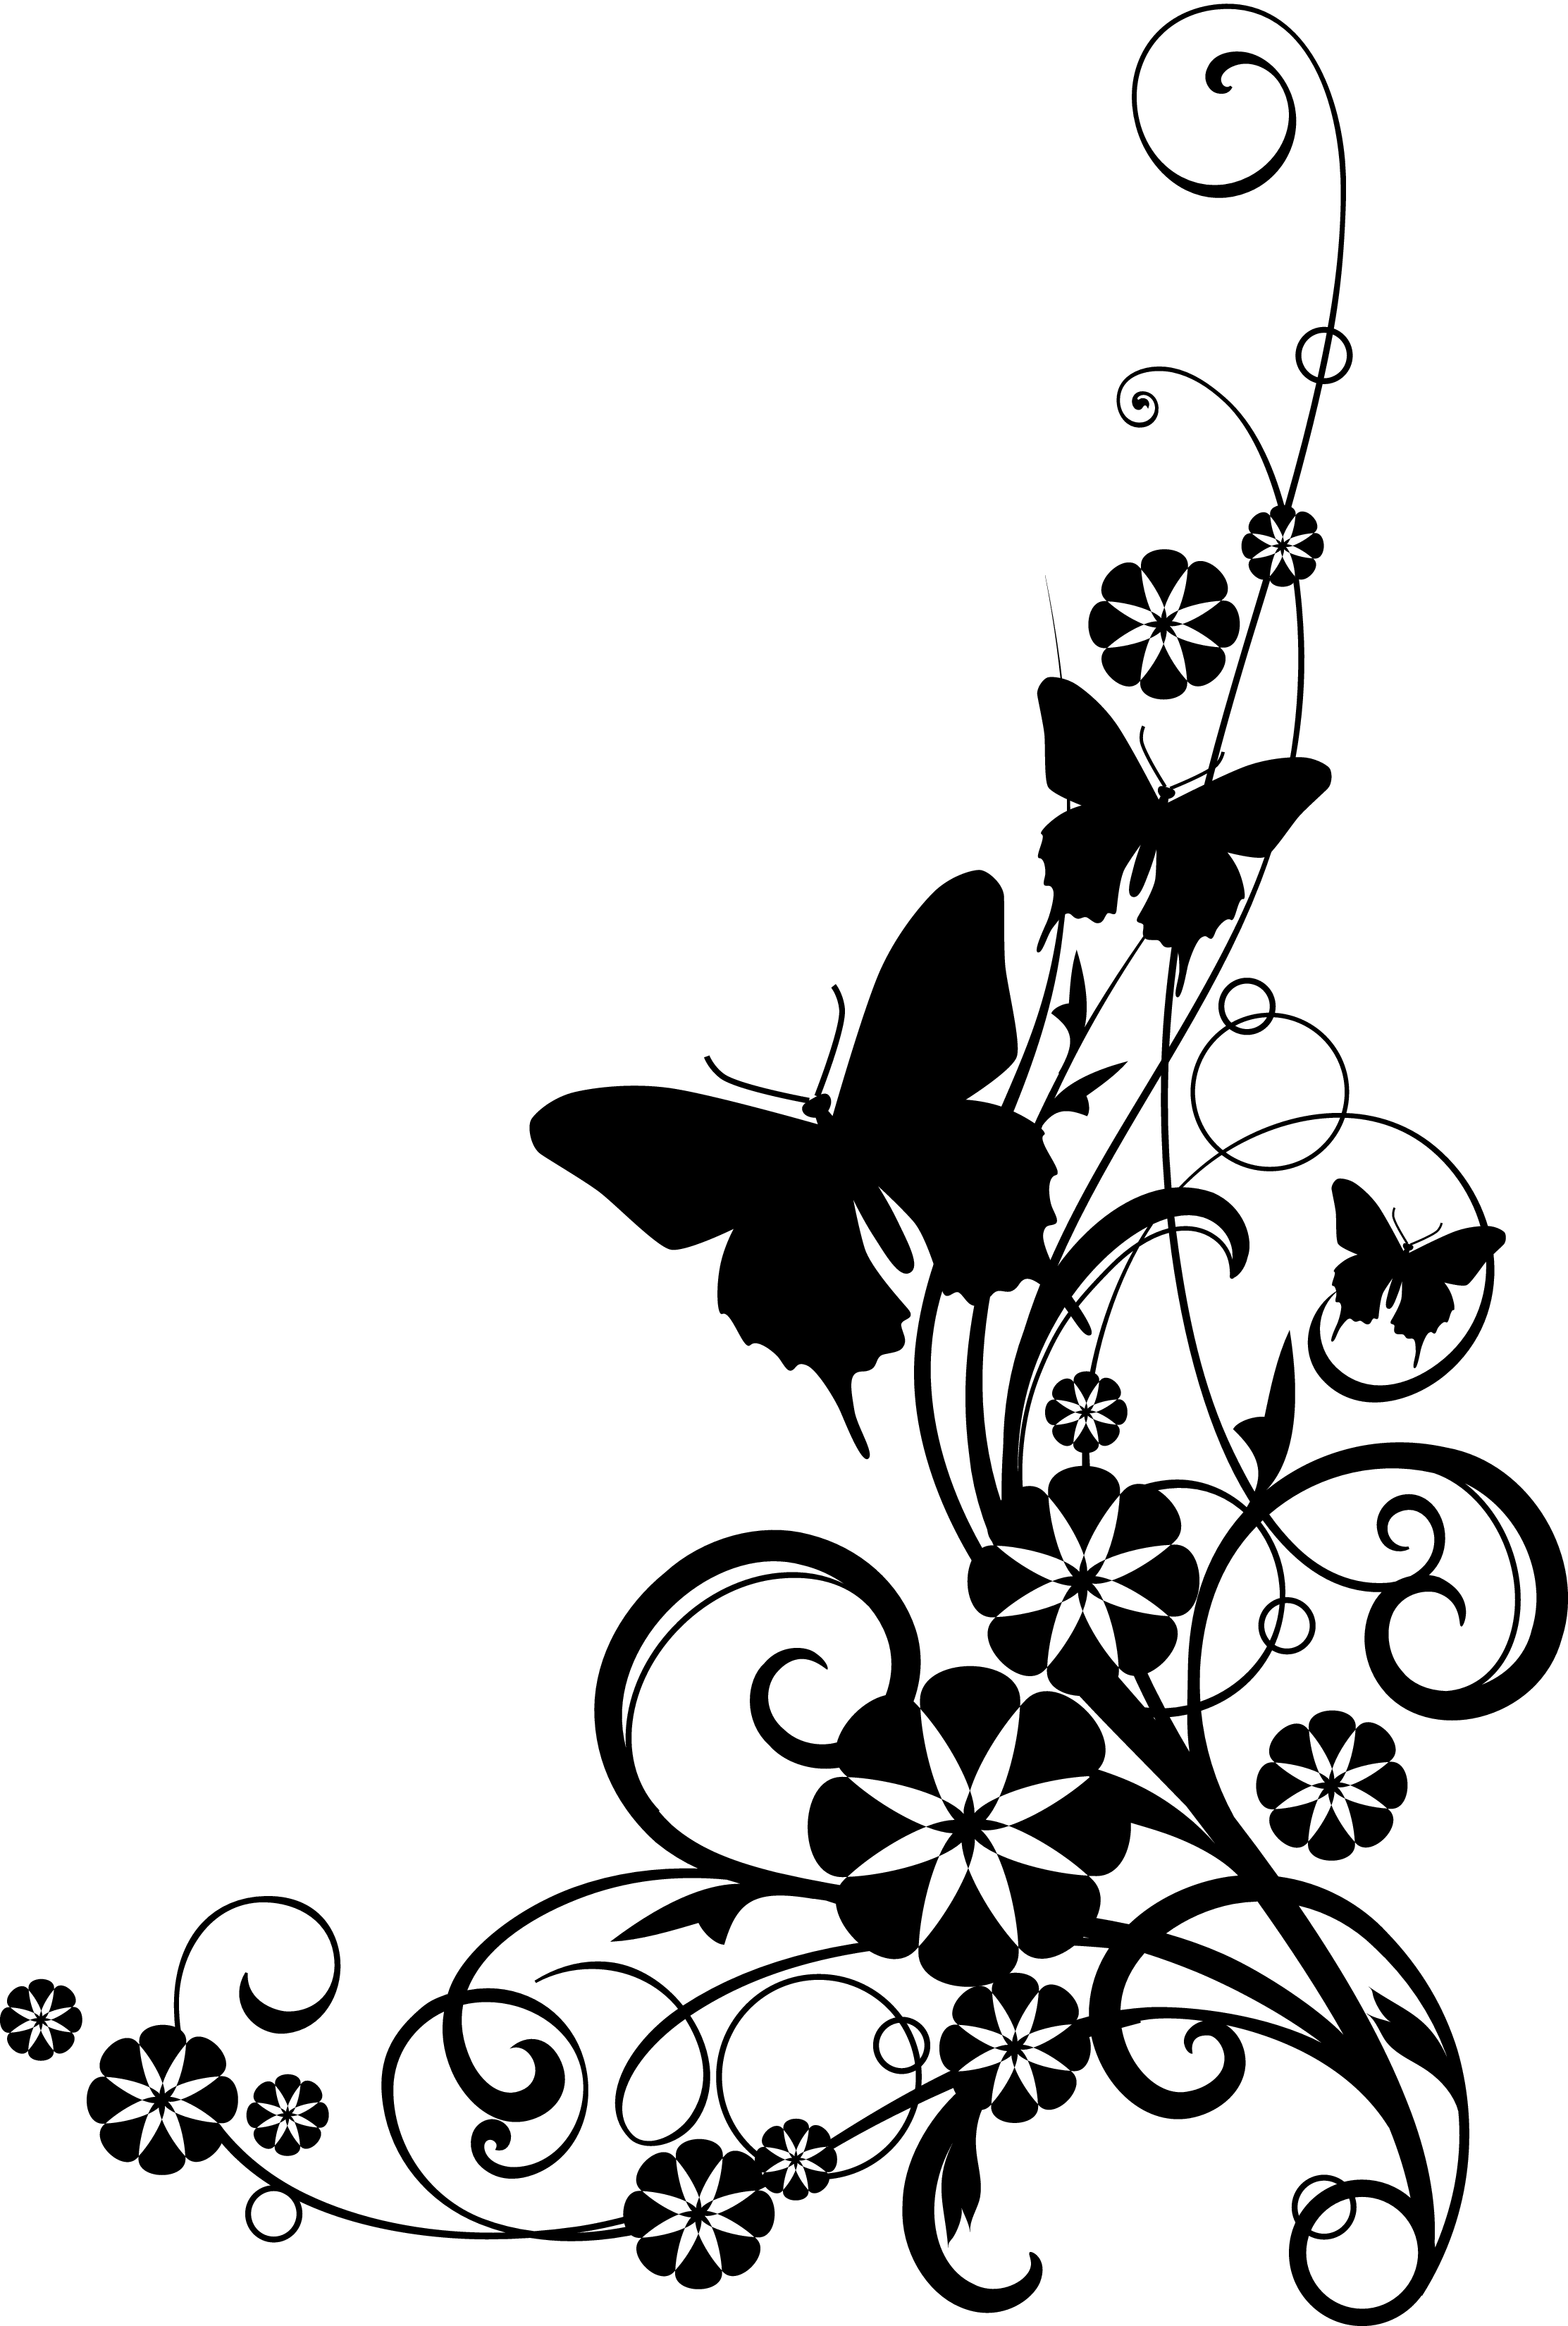 Black And White Flower Border Clipart Atek9ba6c Png